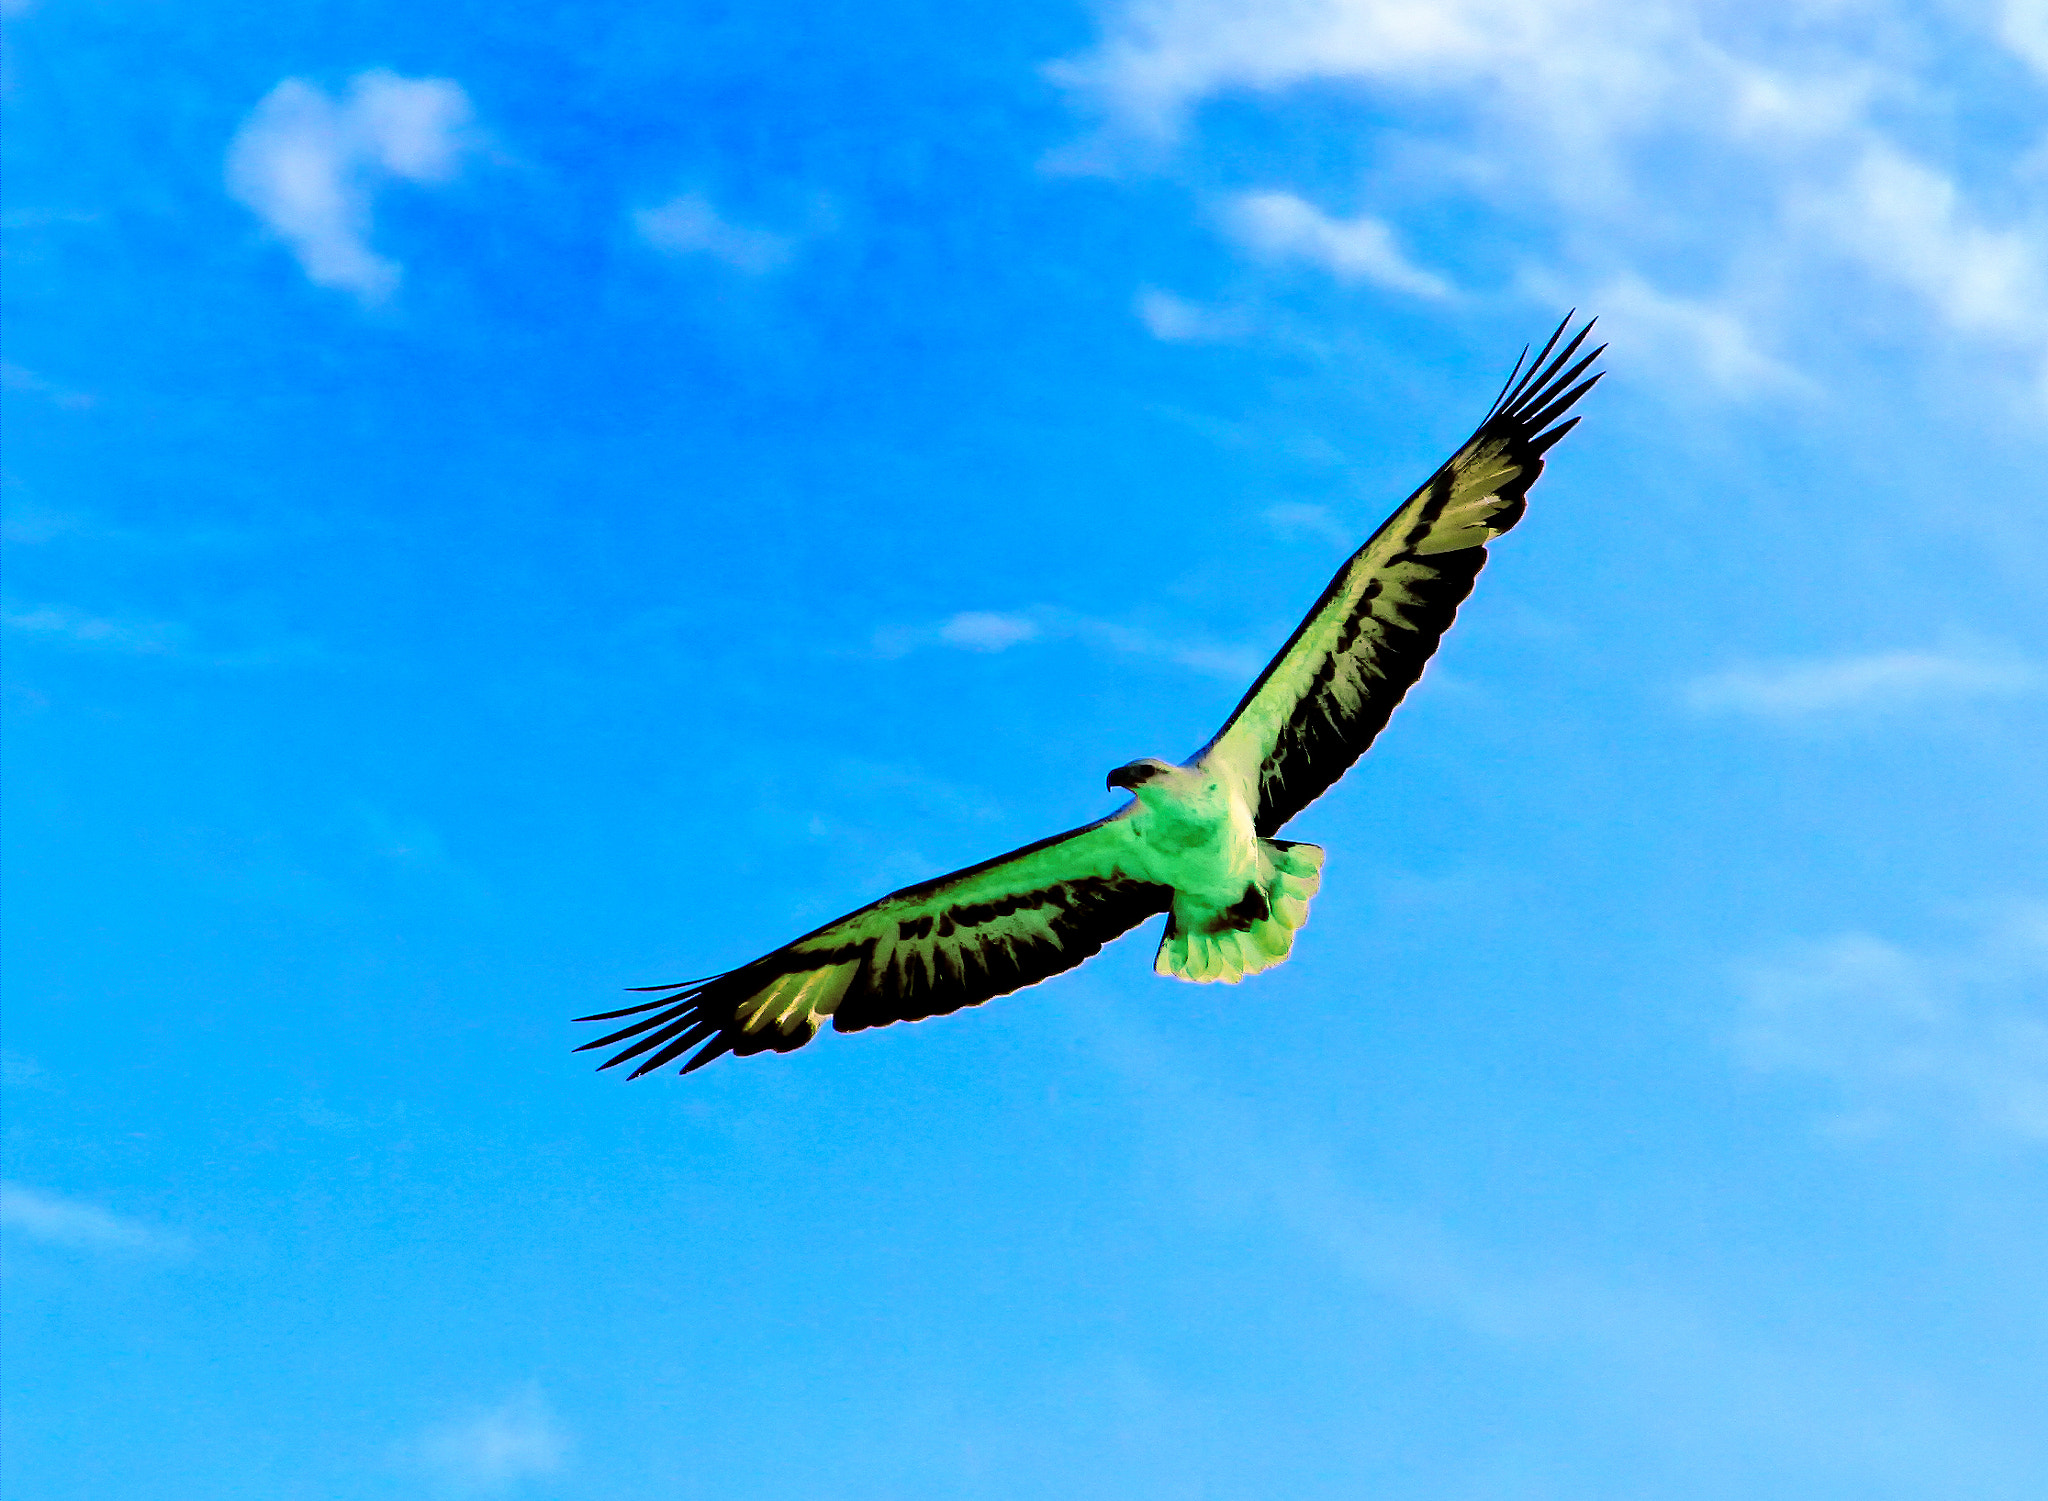 Photograph Soaring High by Jamie Condon on 500px